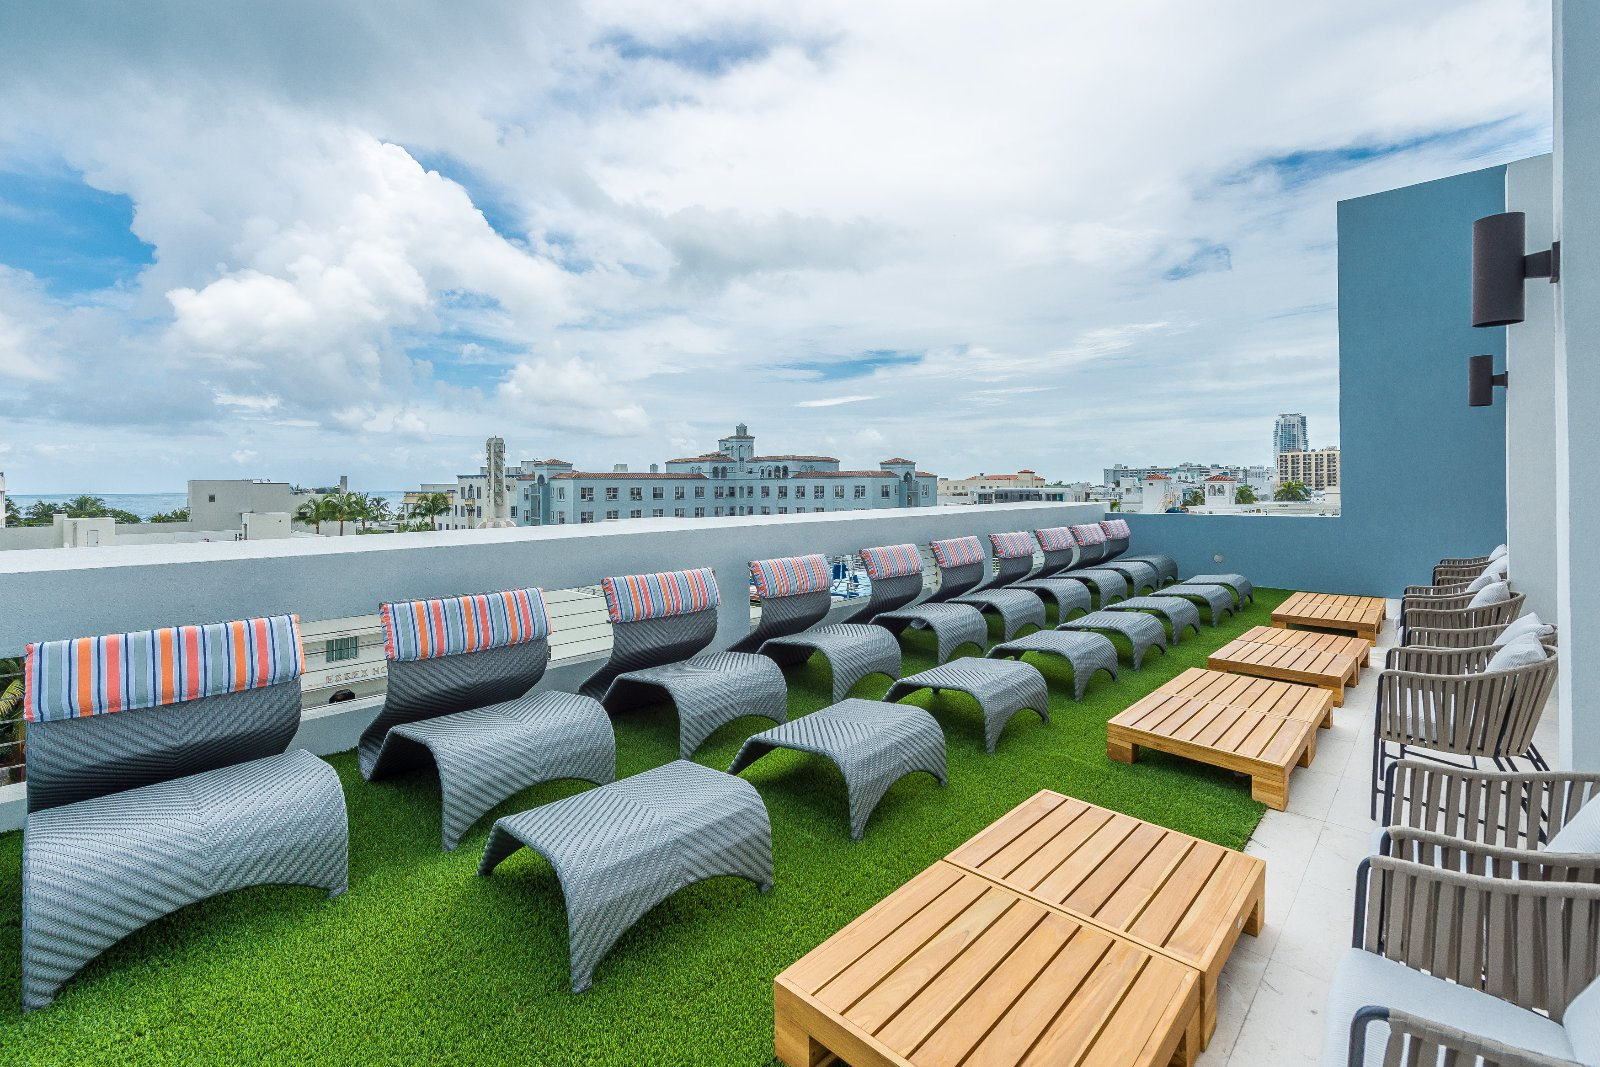 Image Slide3 Link To Larger Rooftop Deck At Fairwind Hotel In Miami Beach Fl